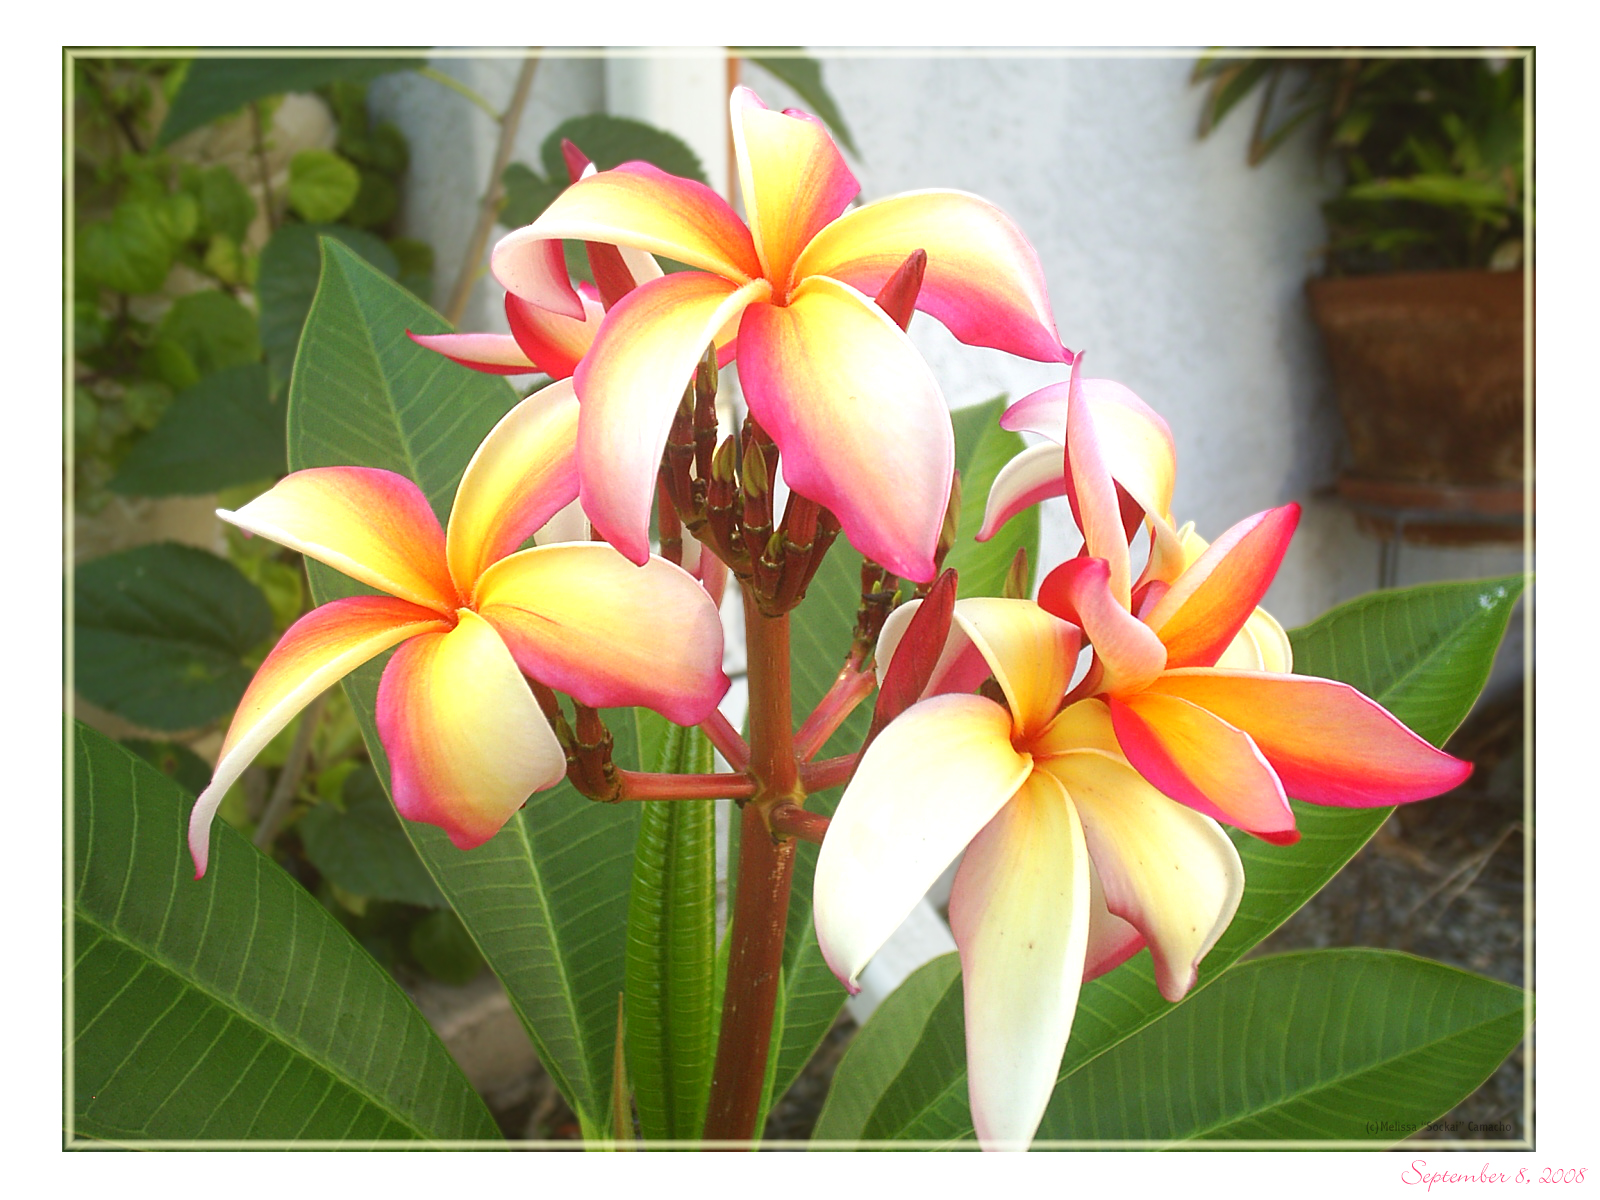 Hawaiian flowers 2 by sockaichan on deviantart hawaiian flowers 2 by sockaichan hawaiian flowers 2 by sockaichan izmirmasajfo